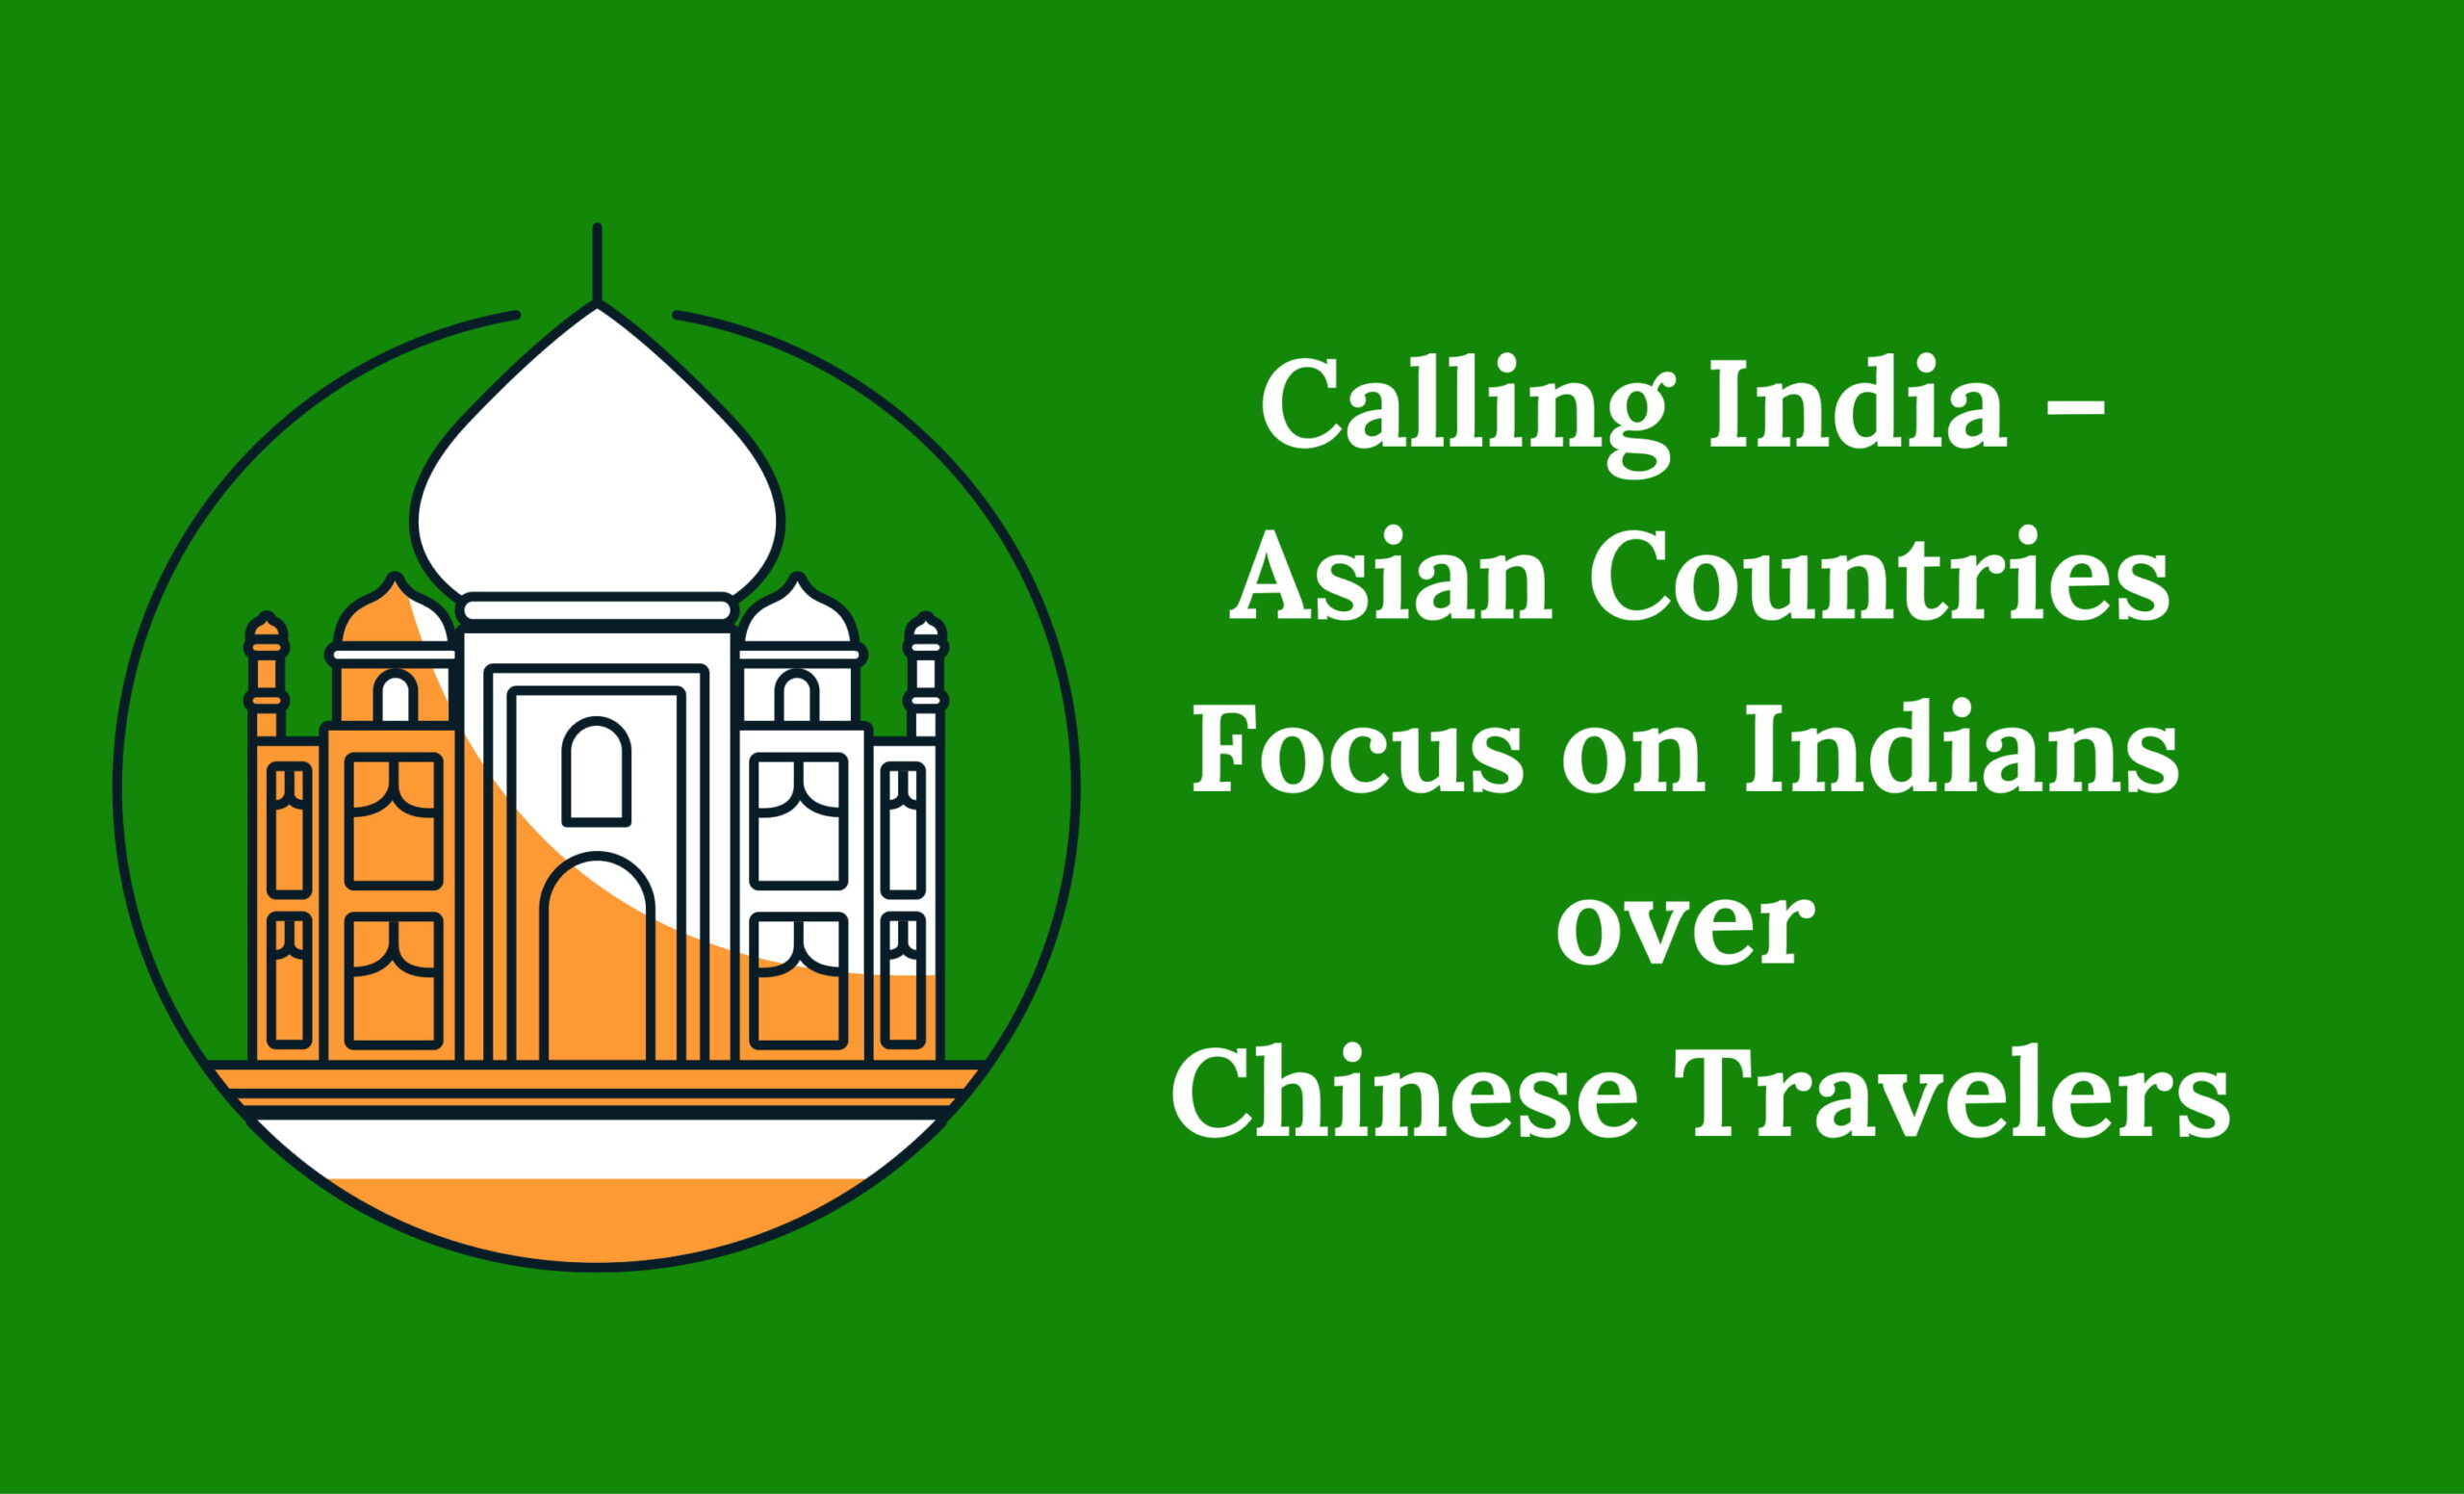 Focusing on Indian tourist over Chinese. Why?